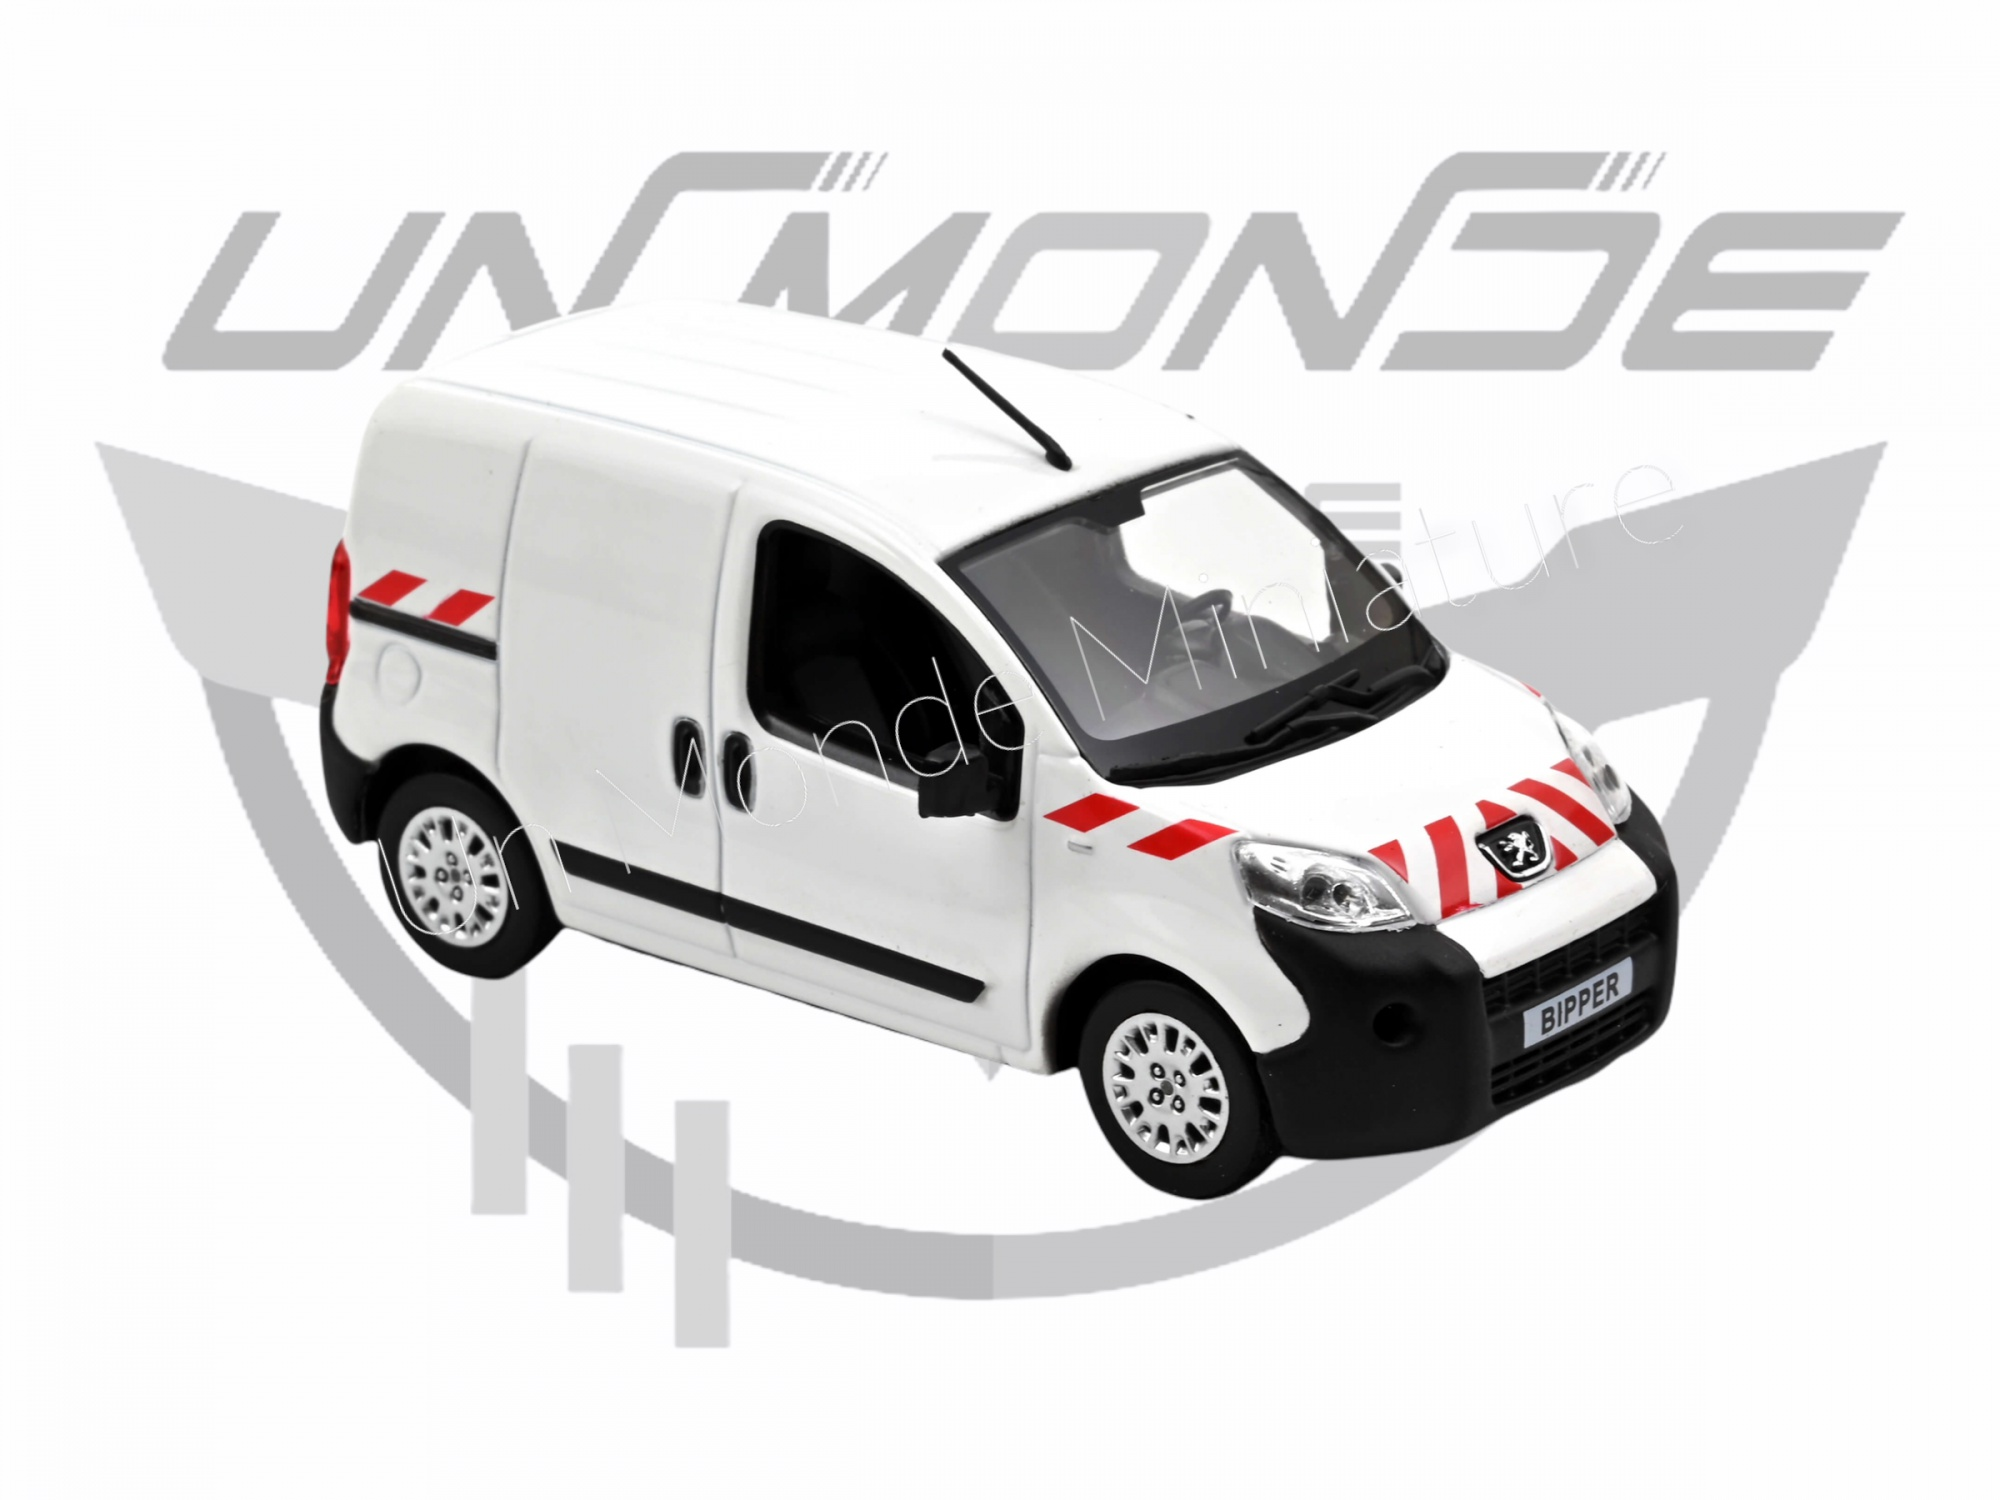 Peugeot Bipper 2009 White with red striping